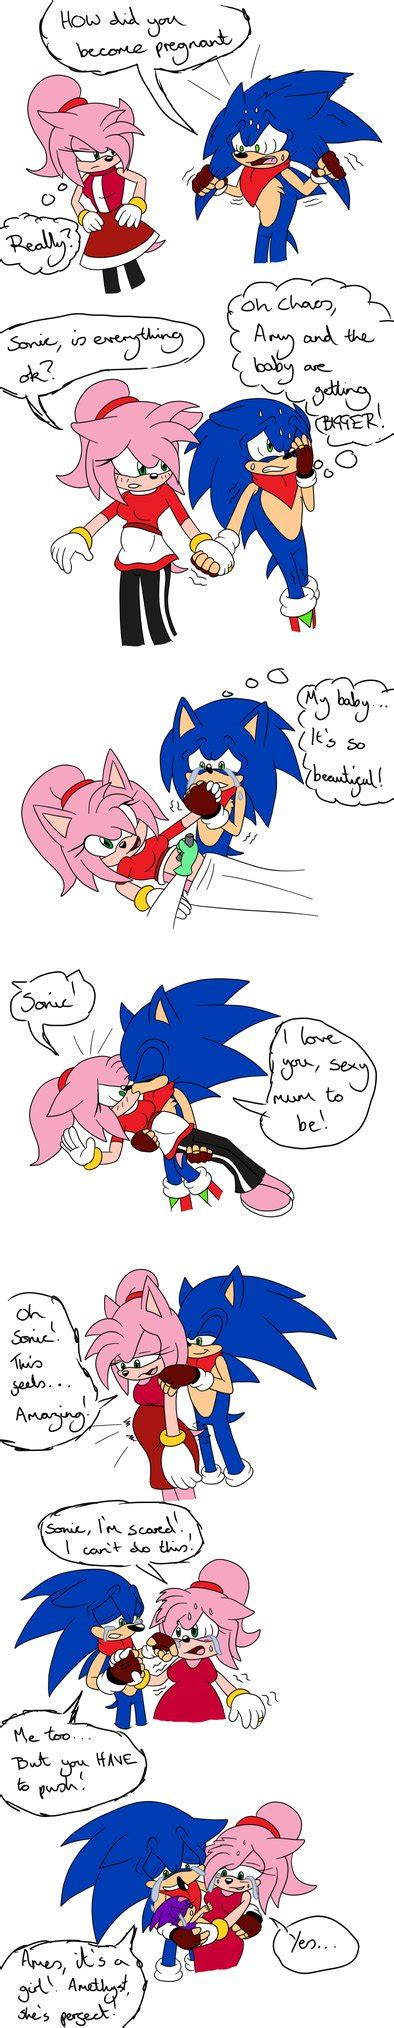 sonamy pregnancy sneak peak by sonikkufan94 on deviantart